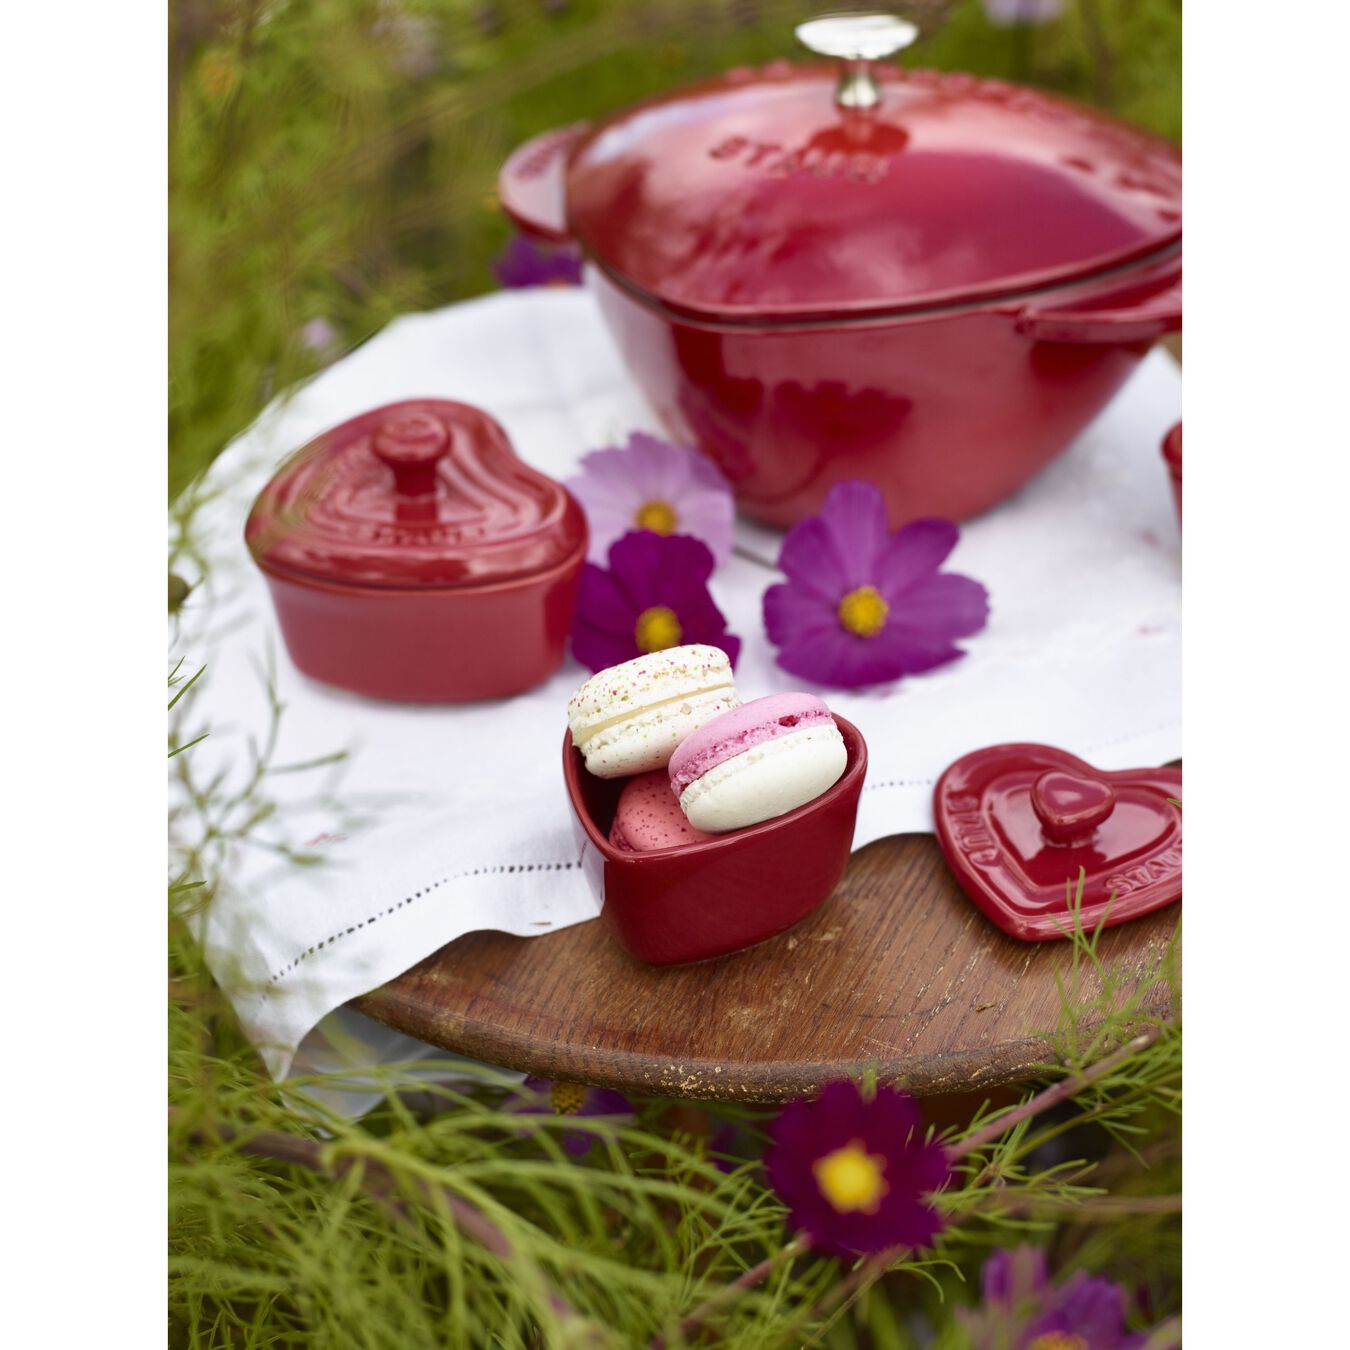 Cocotte 20 cm, Herz, Kirsch-Rot, Gusseisen,,large 6